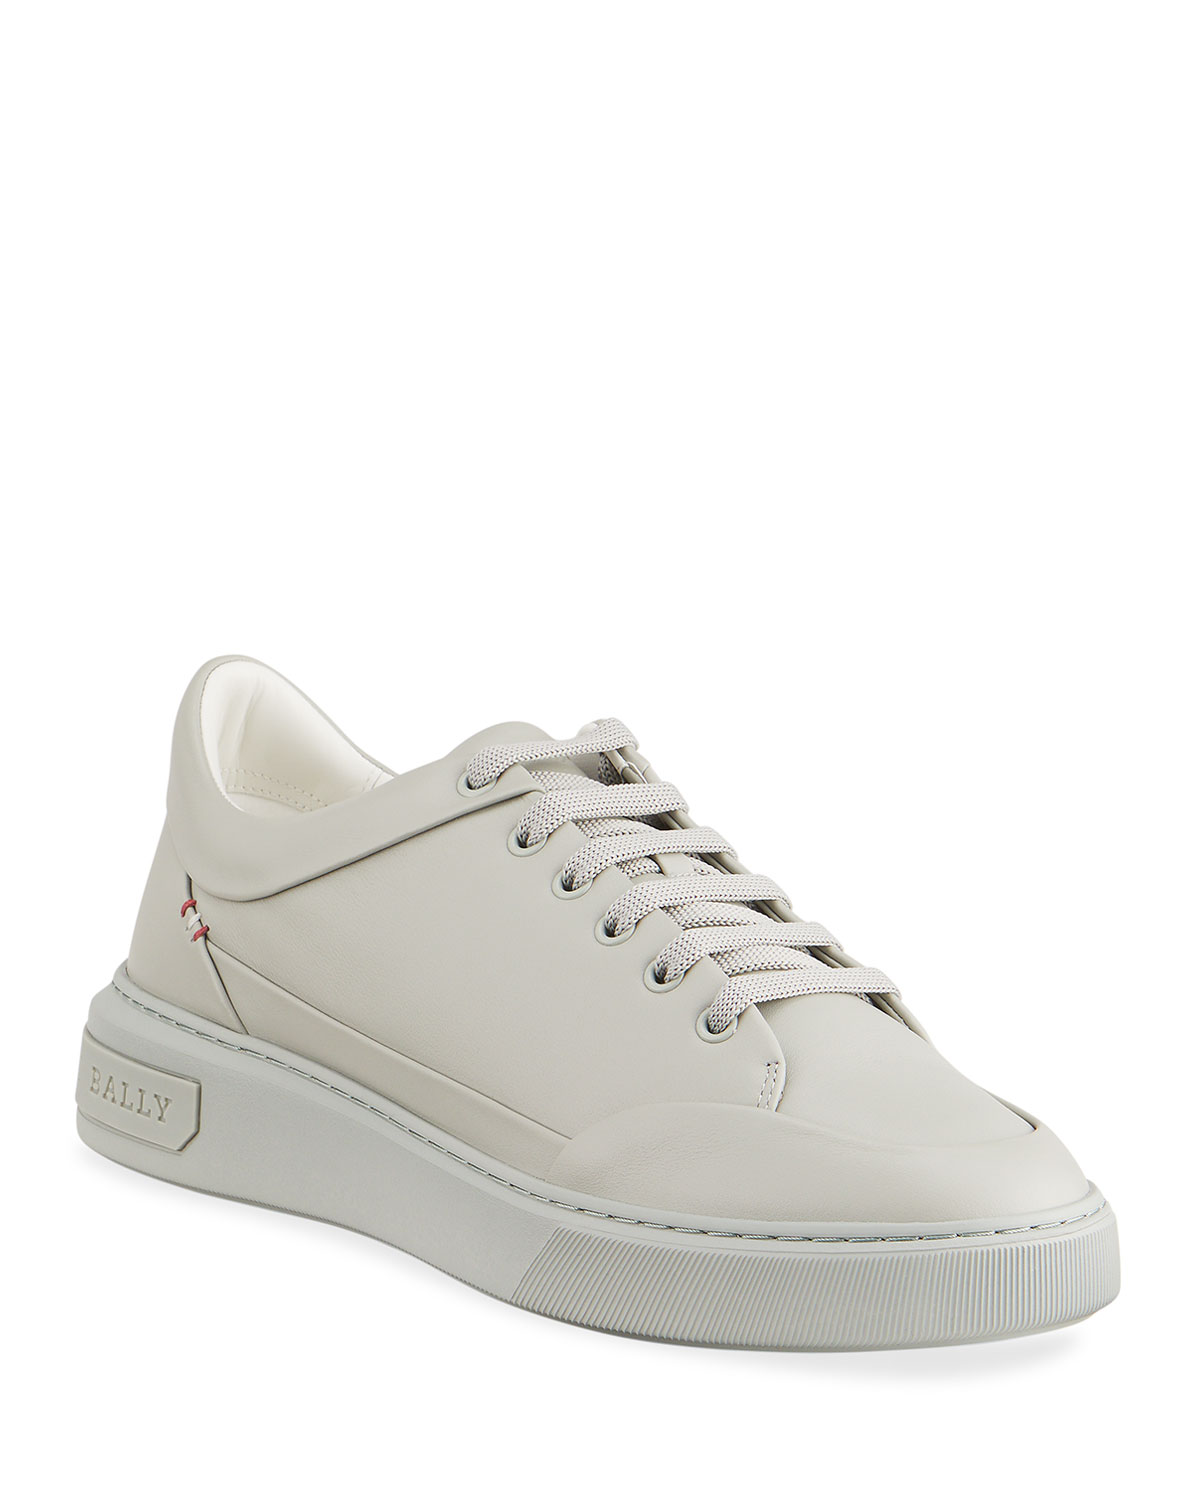 Bally MEN'S MELVIN 11 CALFSKIN LEATHER LOW-TOP SNEAKERS